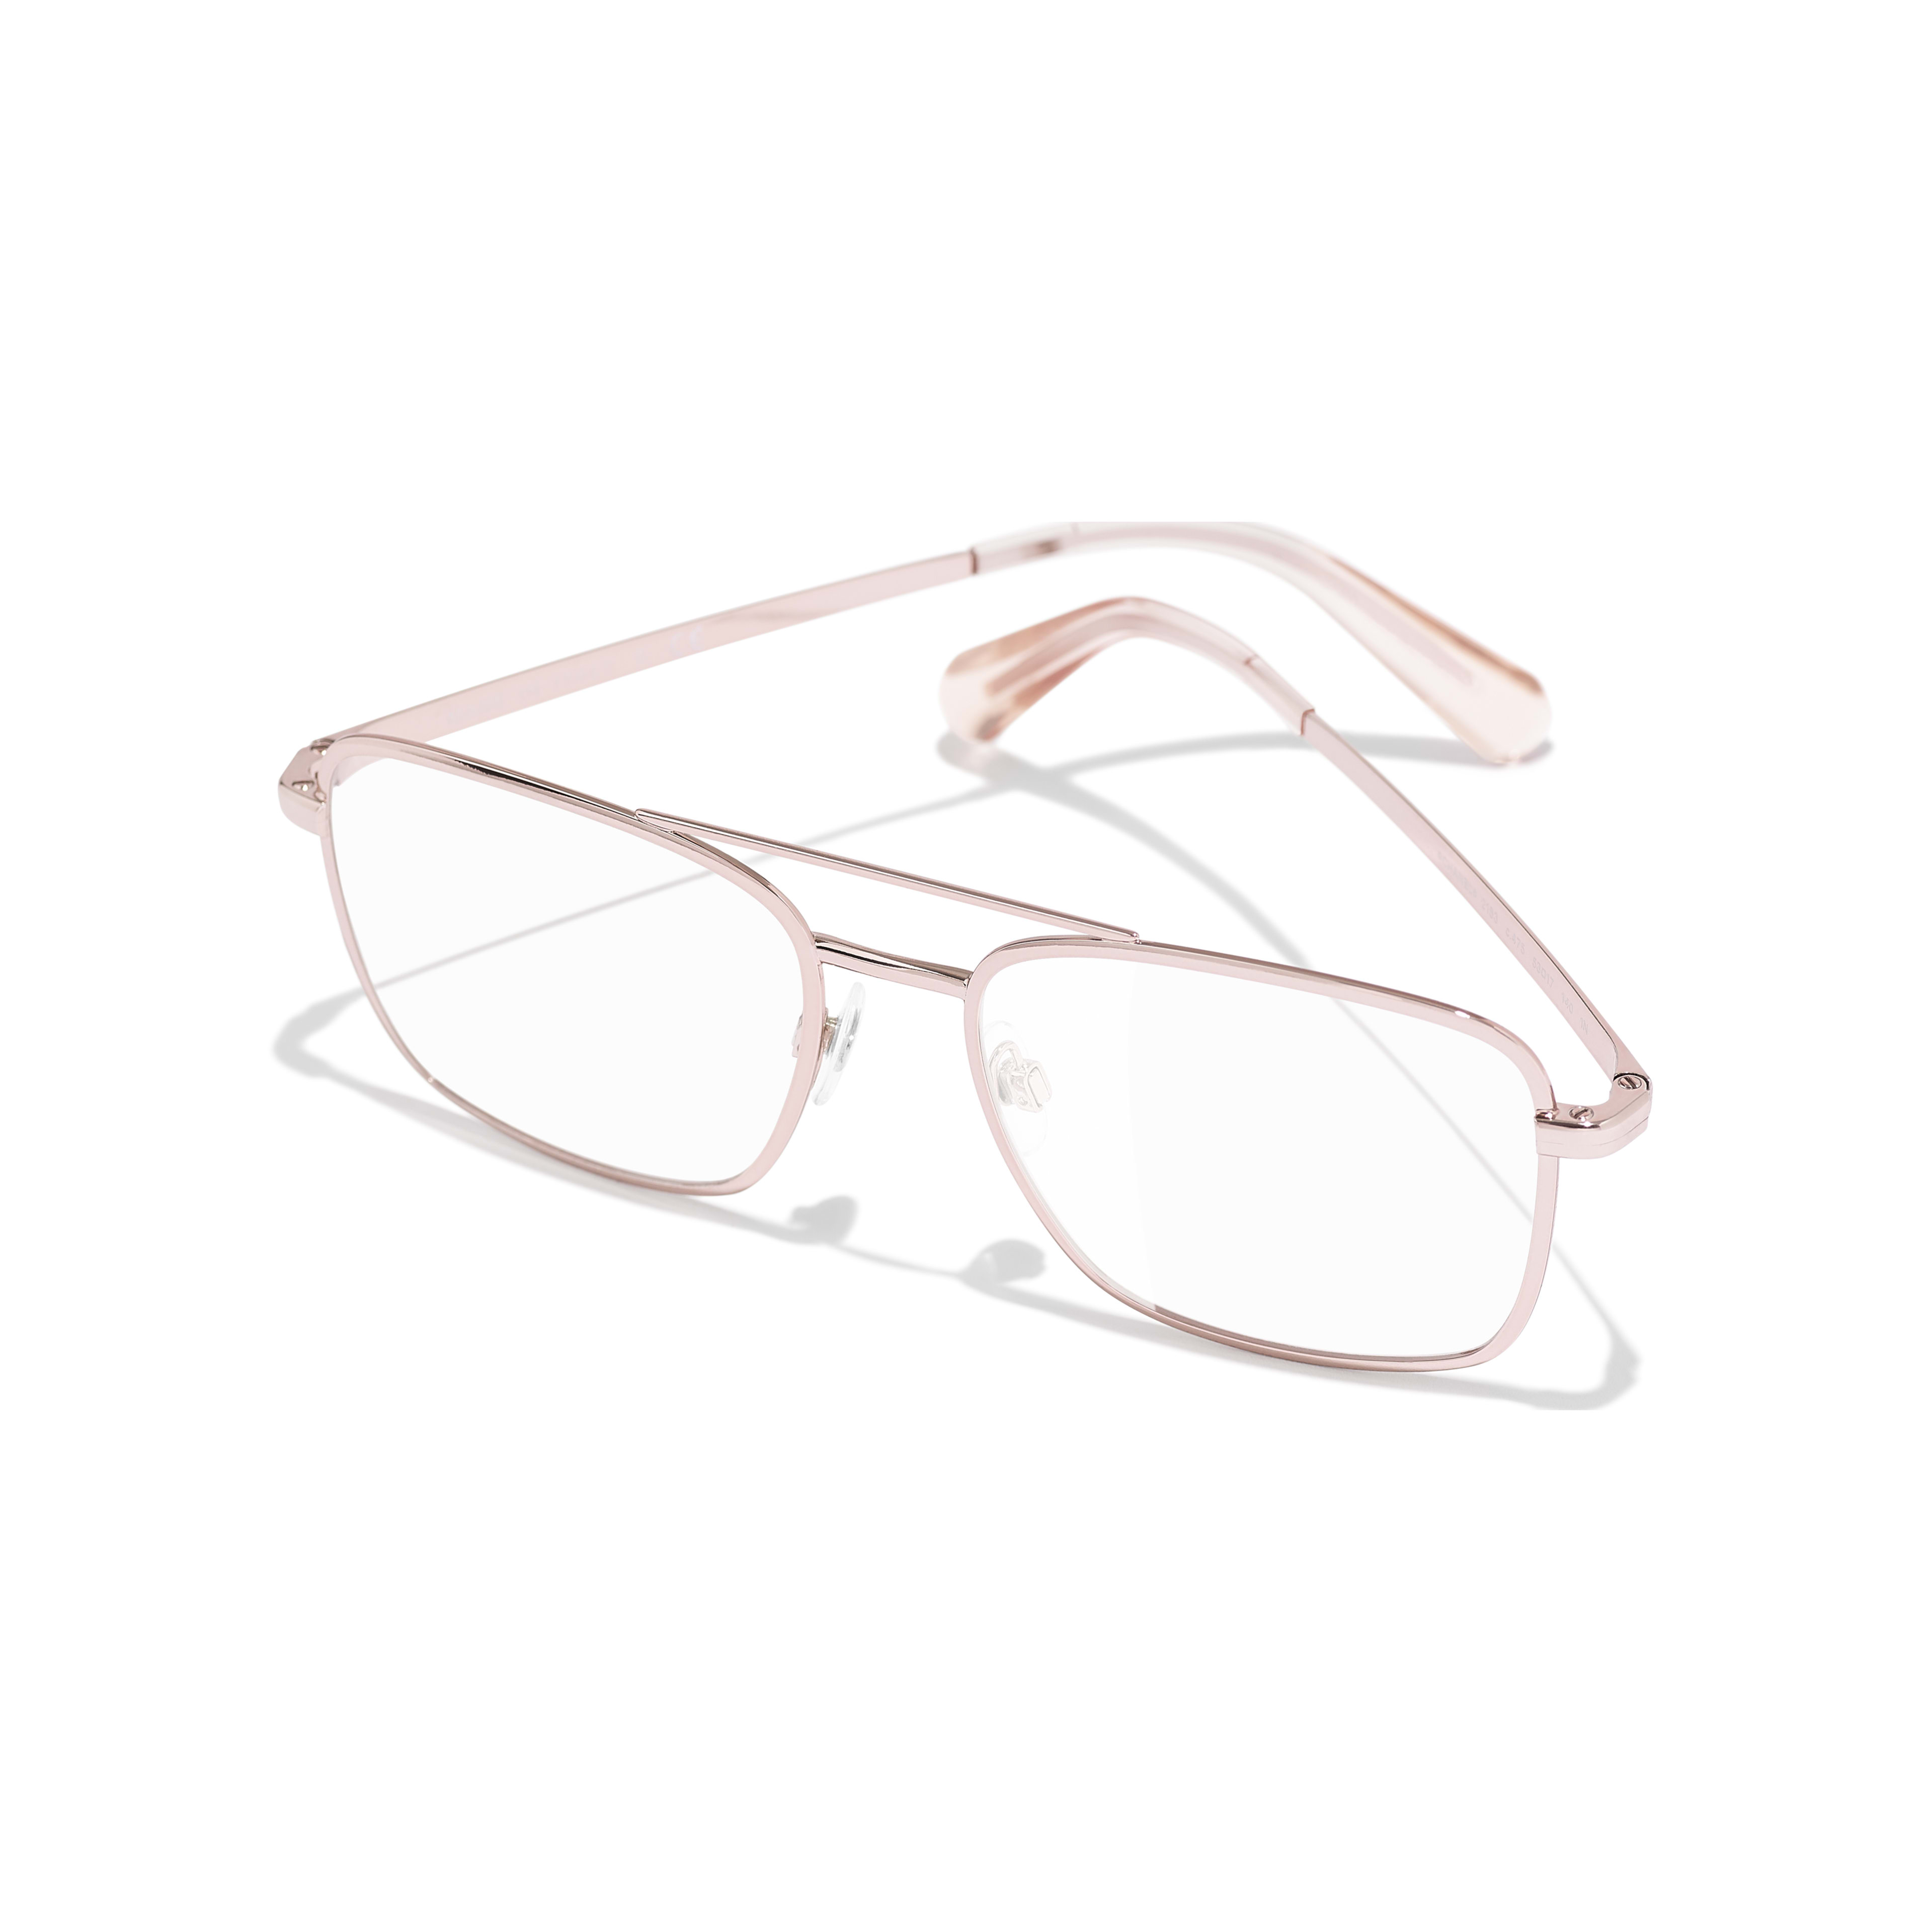 Pilot Eyeglasses - Pink Gold - Metal - Extra view - see full sized version